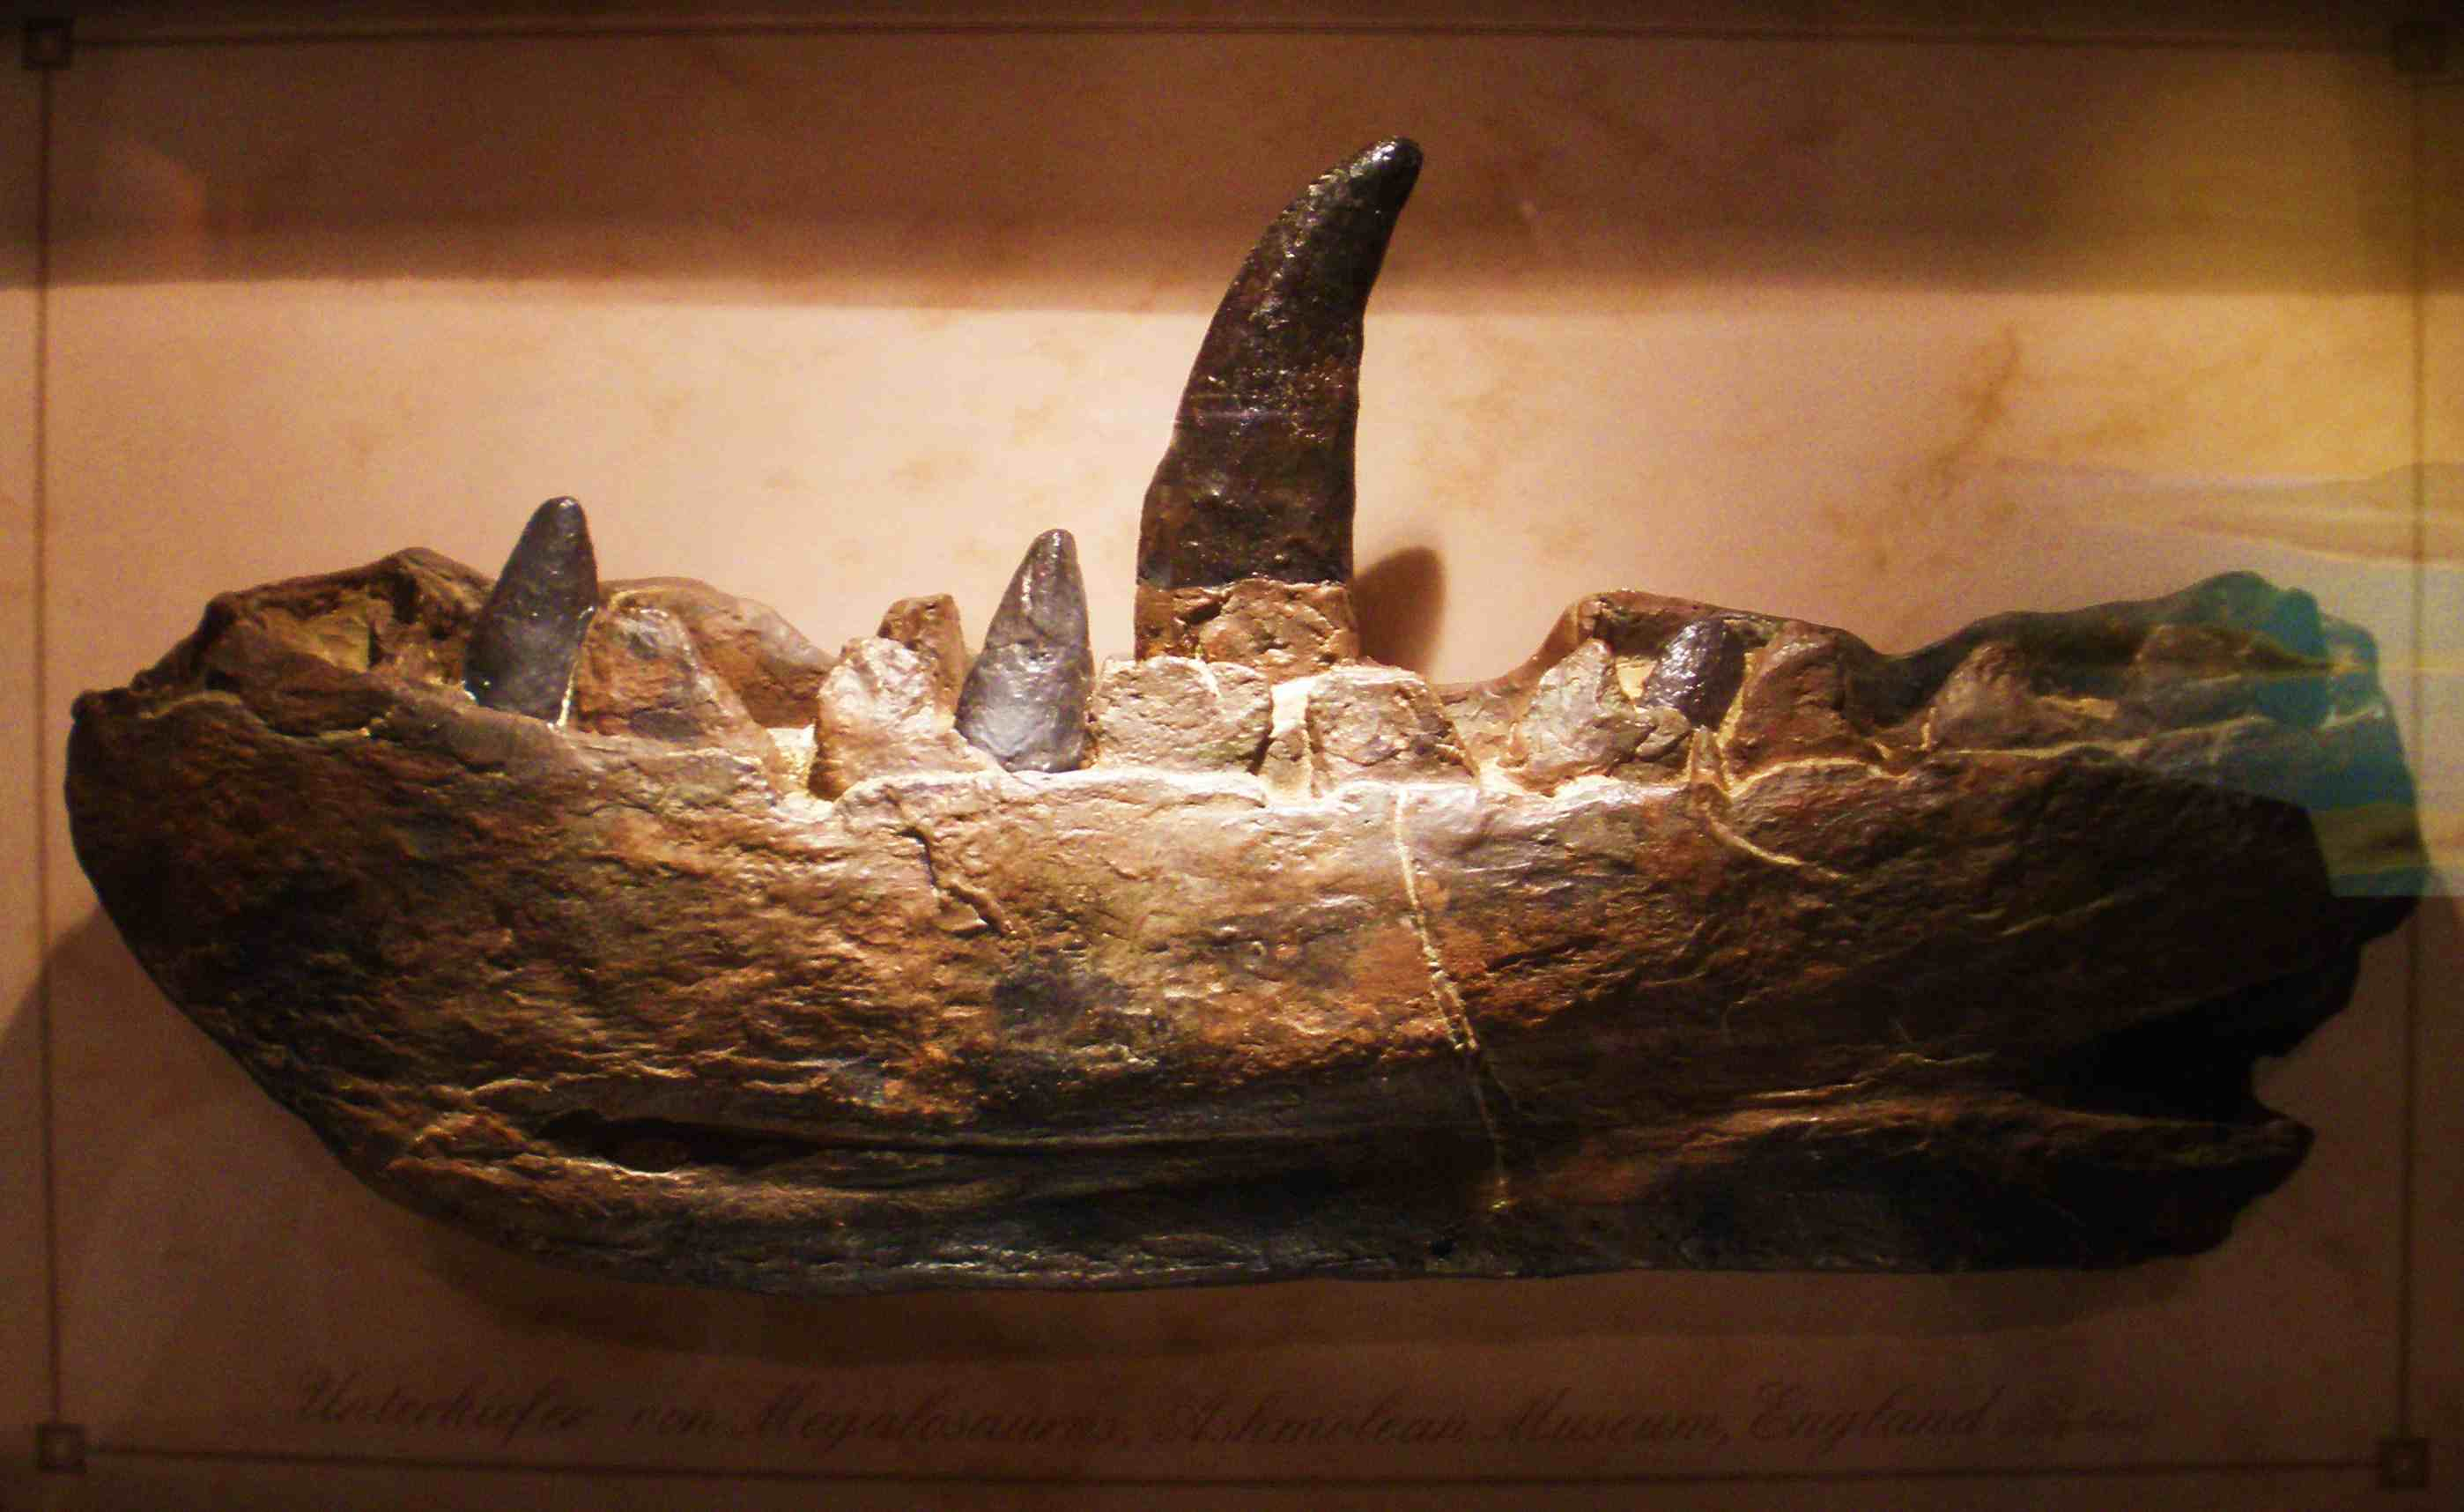 The lower jaw of Megalosaurus on display at a museum.